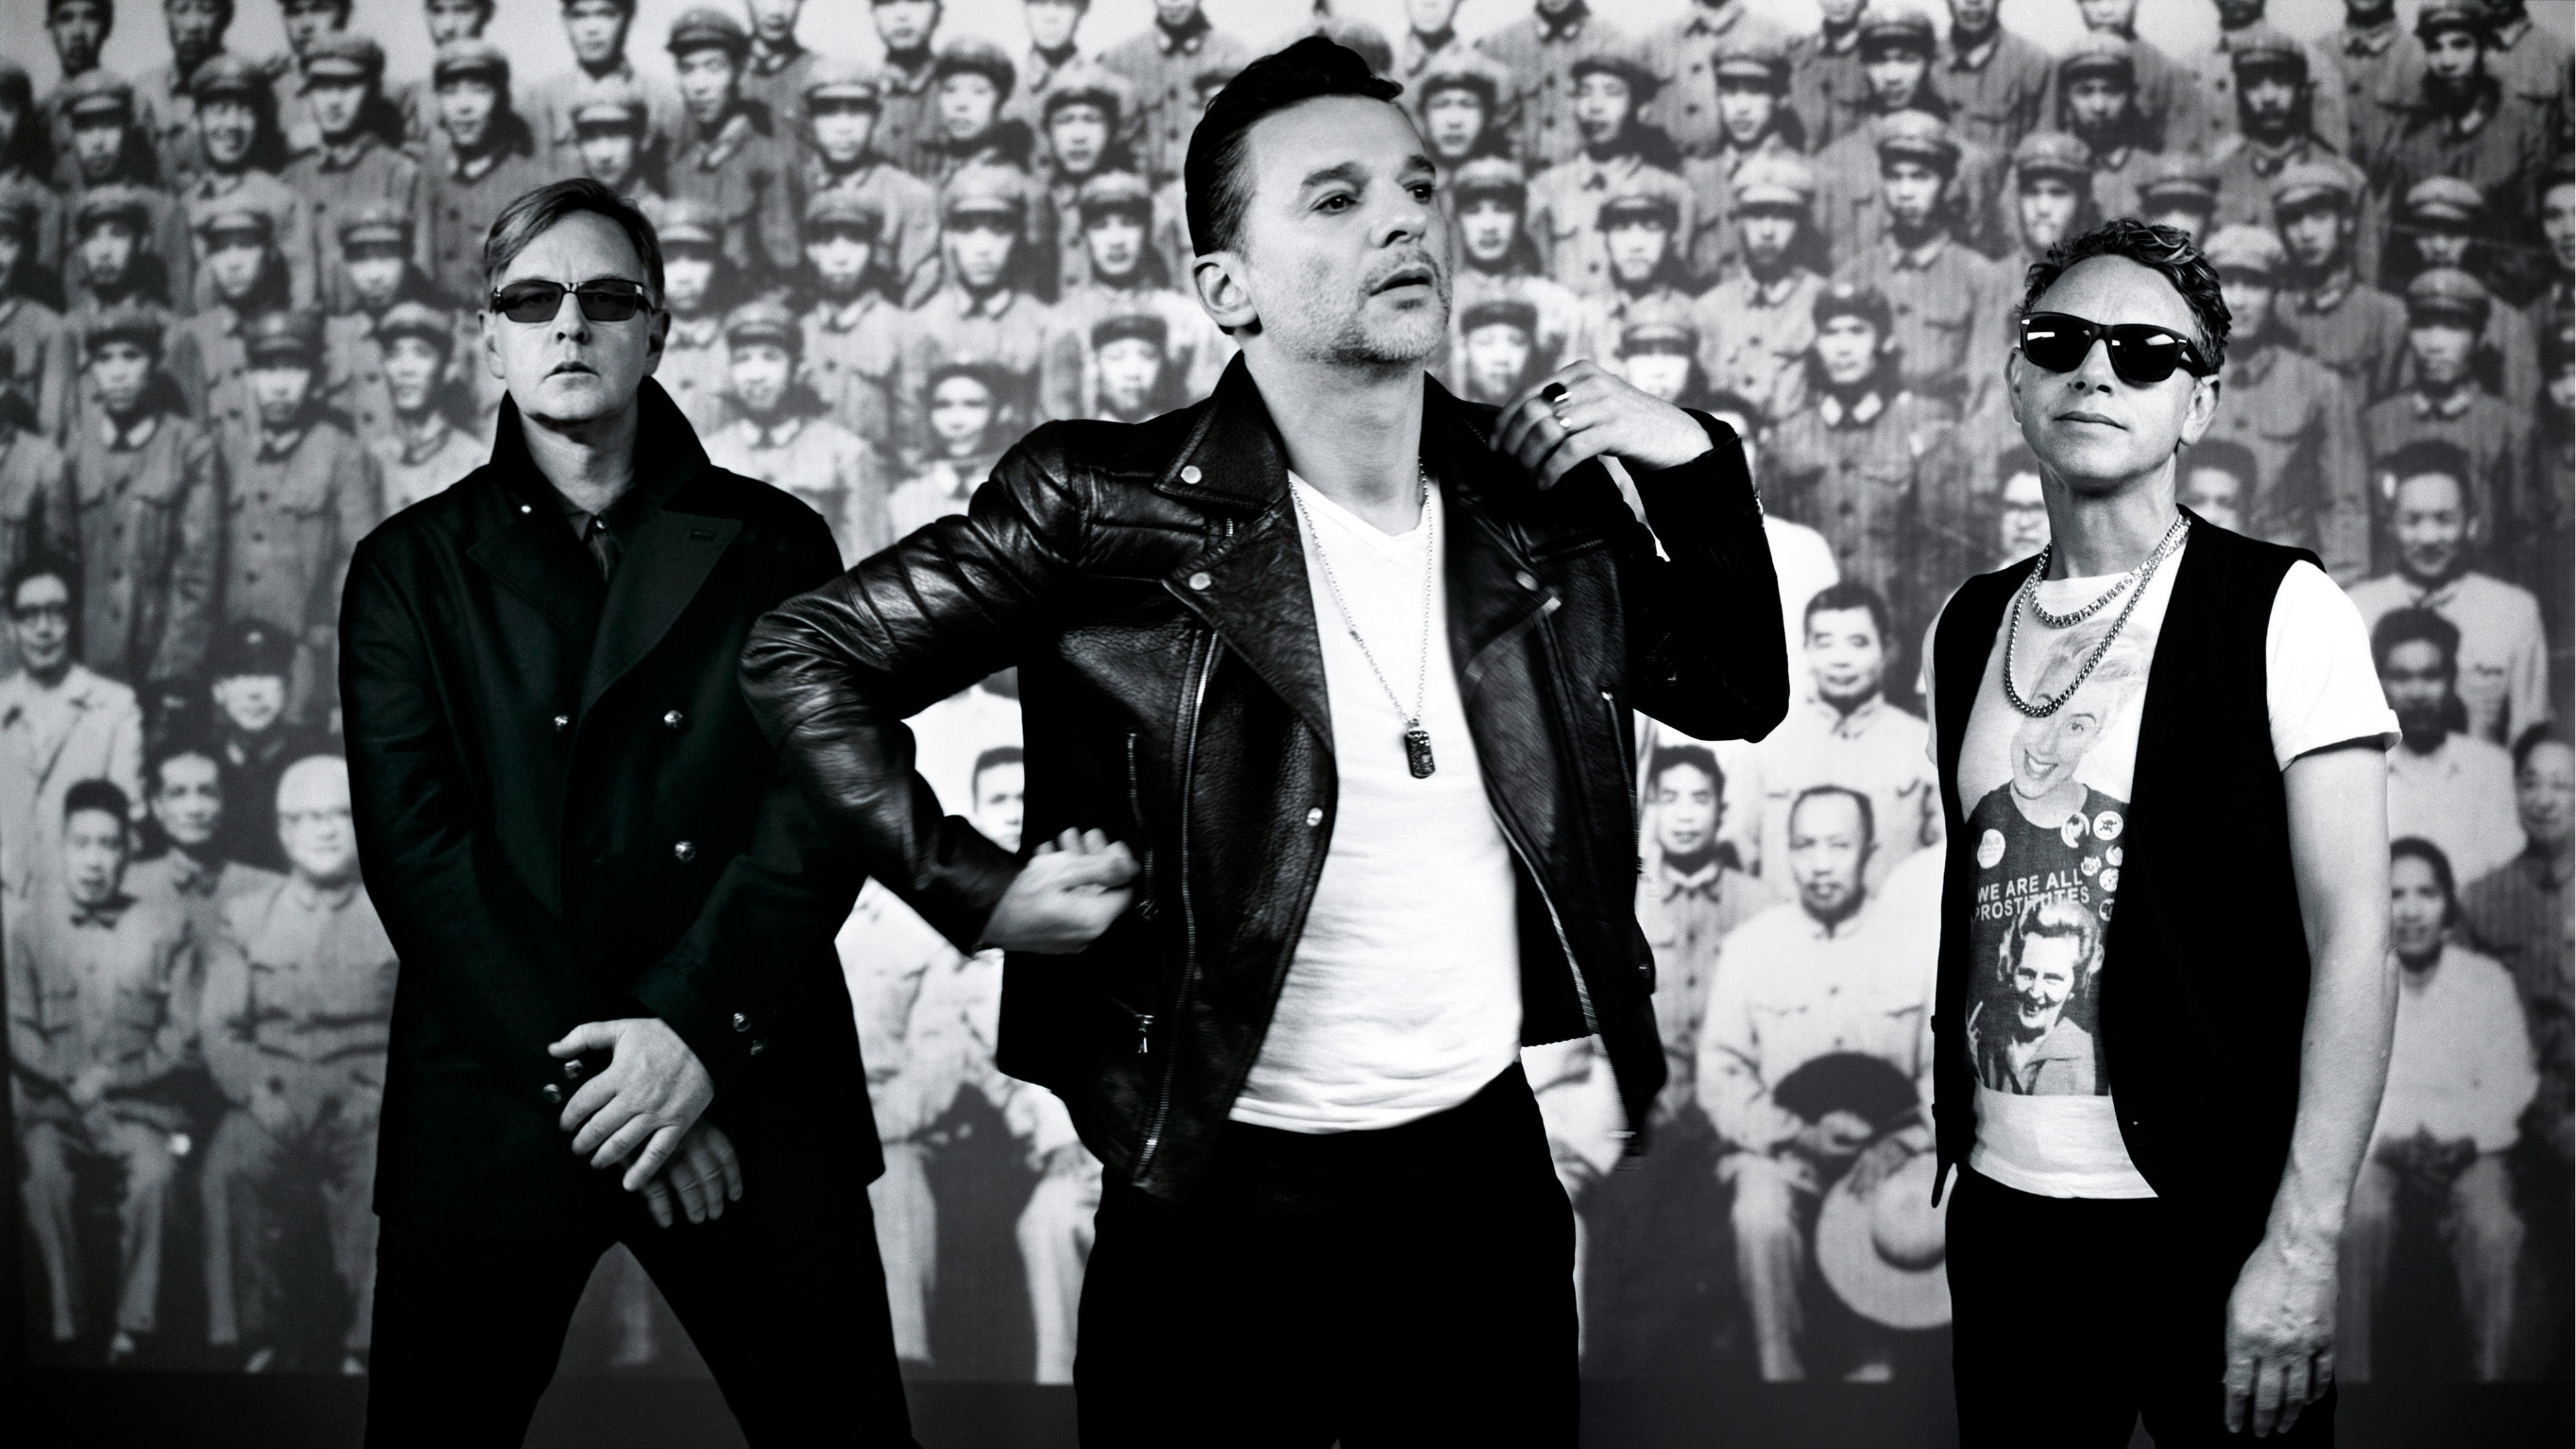 3840x2160  Wallpaper delta machine, david gahan, martin gore, depeche mode,  andrew fletcher